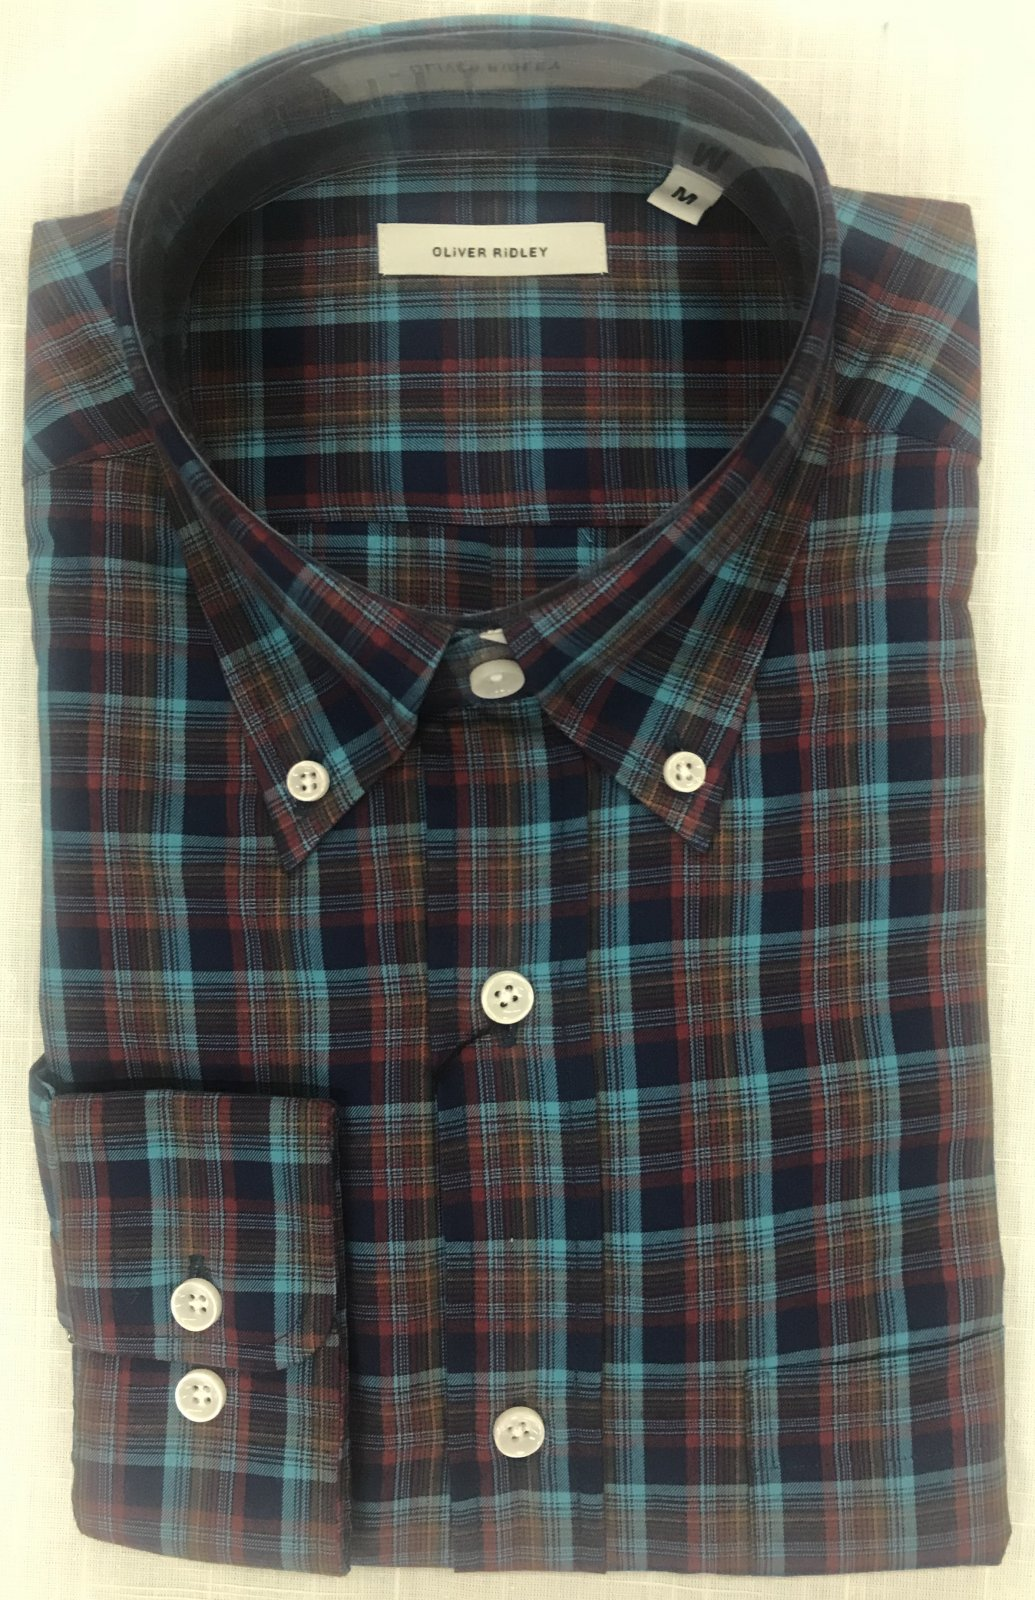 Oliver Ridley Goxfrid Brushed Twill Shirt